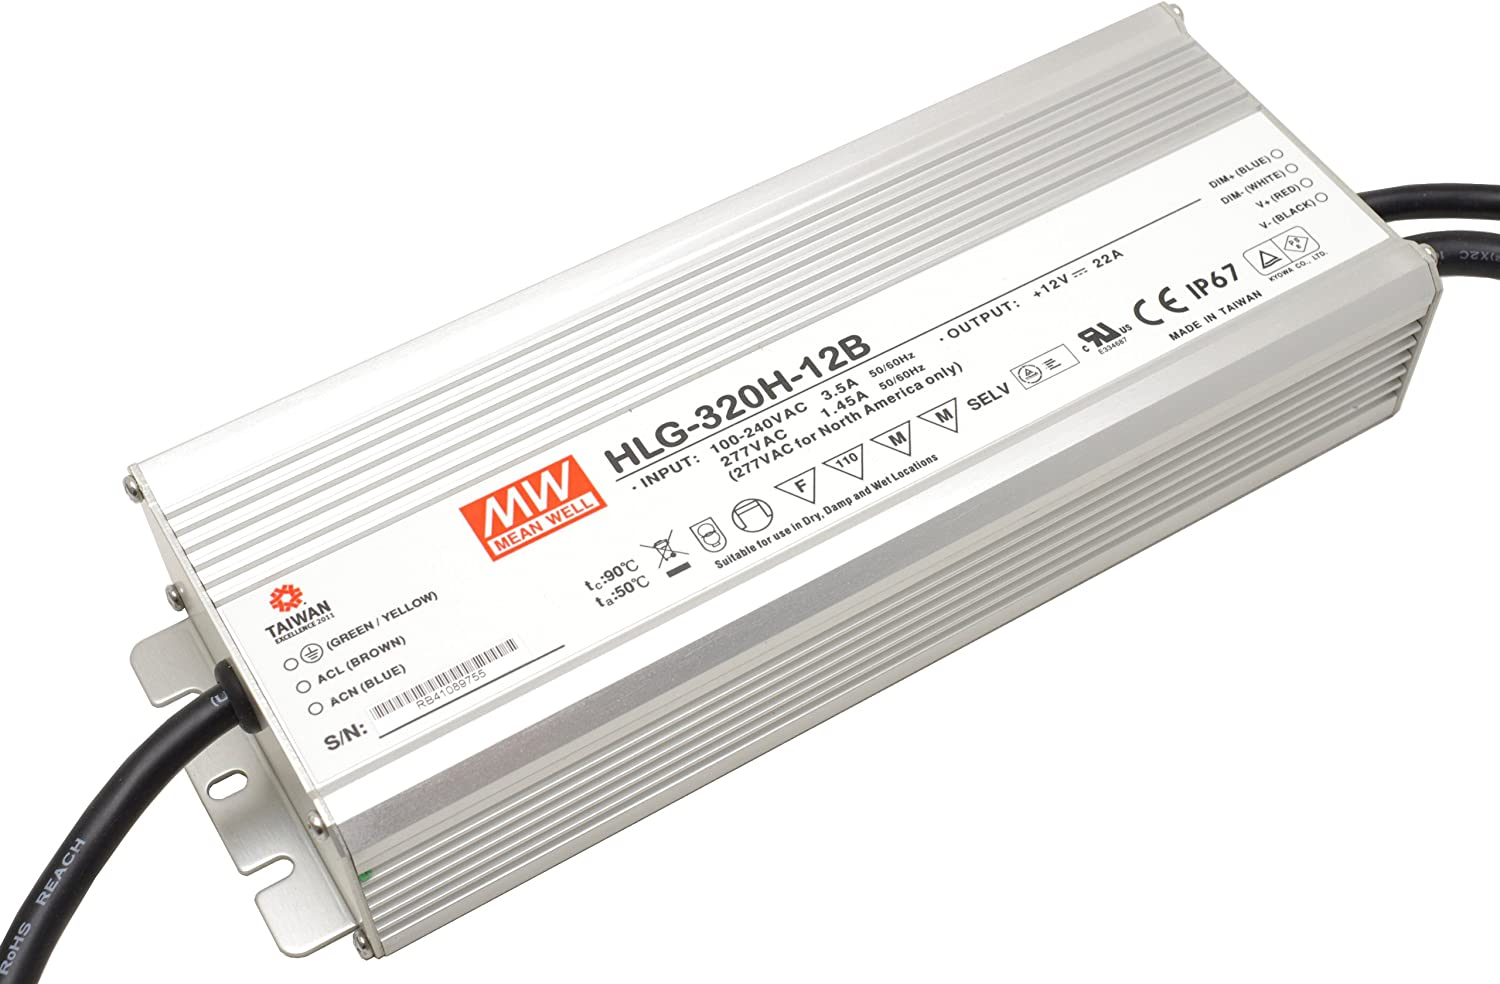 12 V 22 A 1~10 VDC, PWM-Signal, oder Widerstand integrierte 3-in-1-Dimmfunktion Mean Well LED-Netzteil 264 W MeanWell HLG-320H-12B